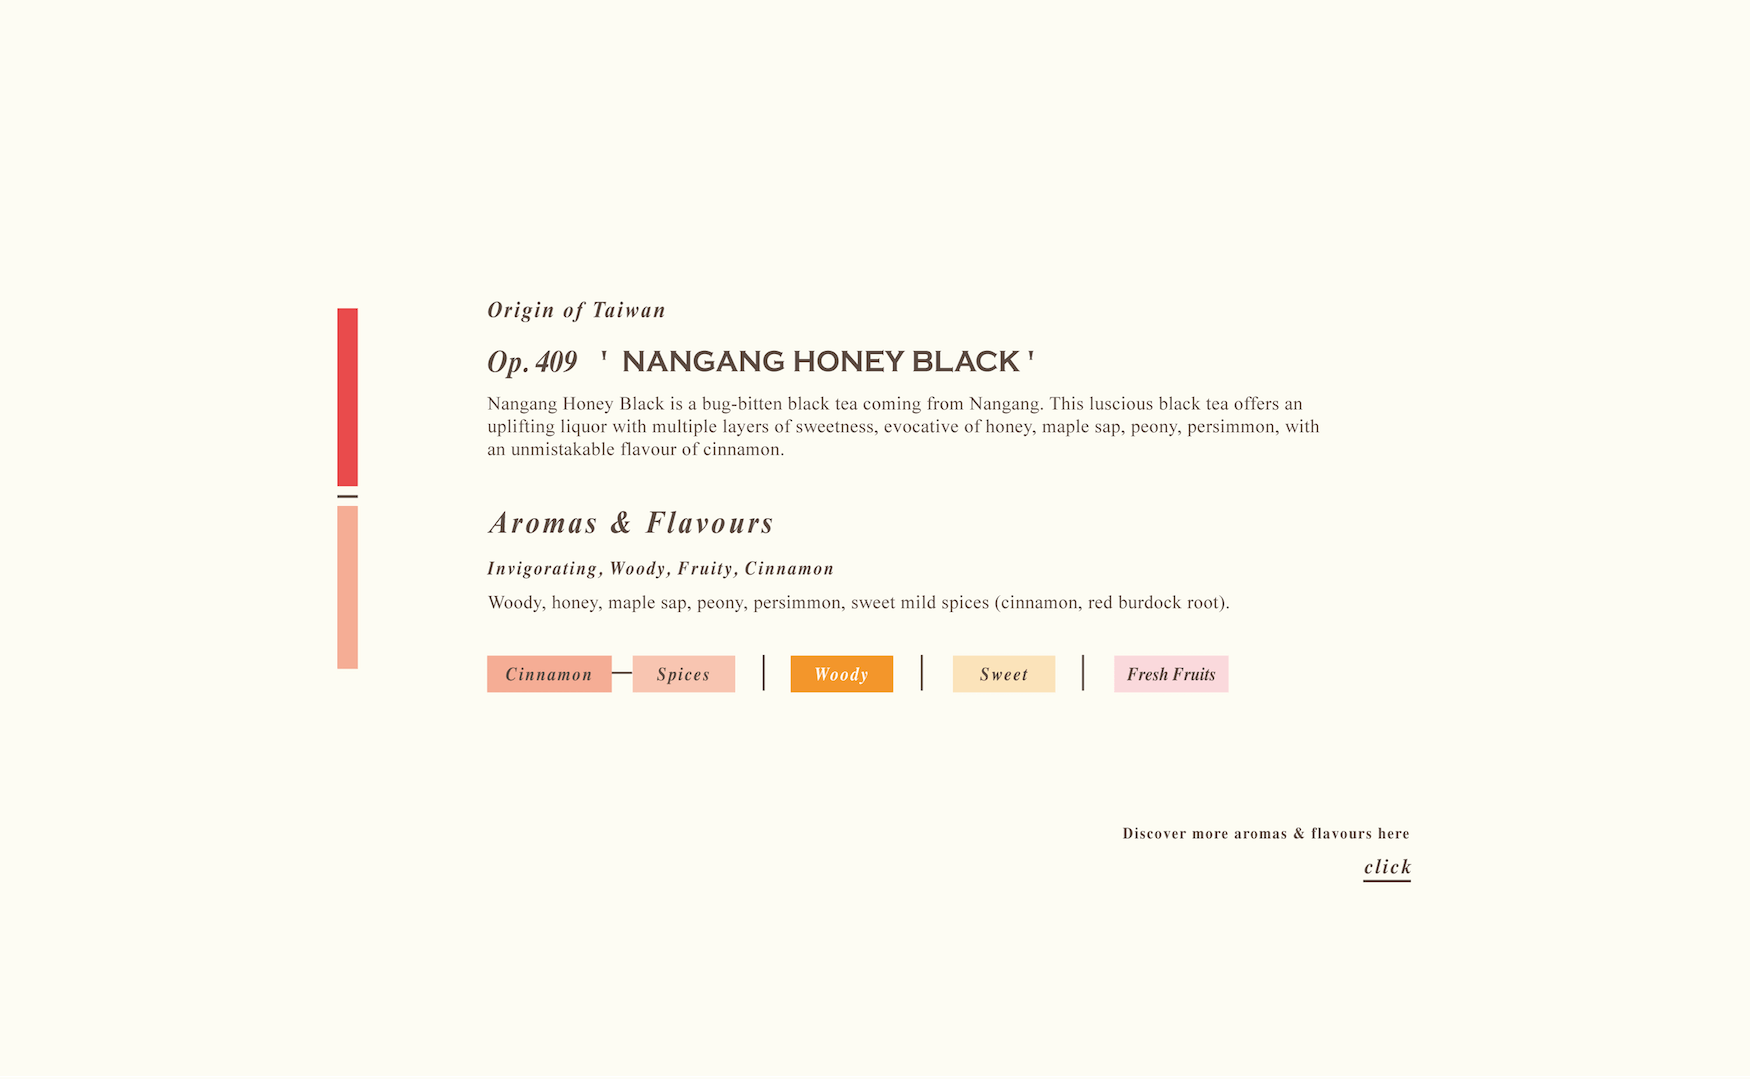 Nangang Honey Black Loose Black Tea